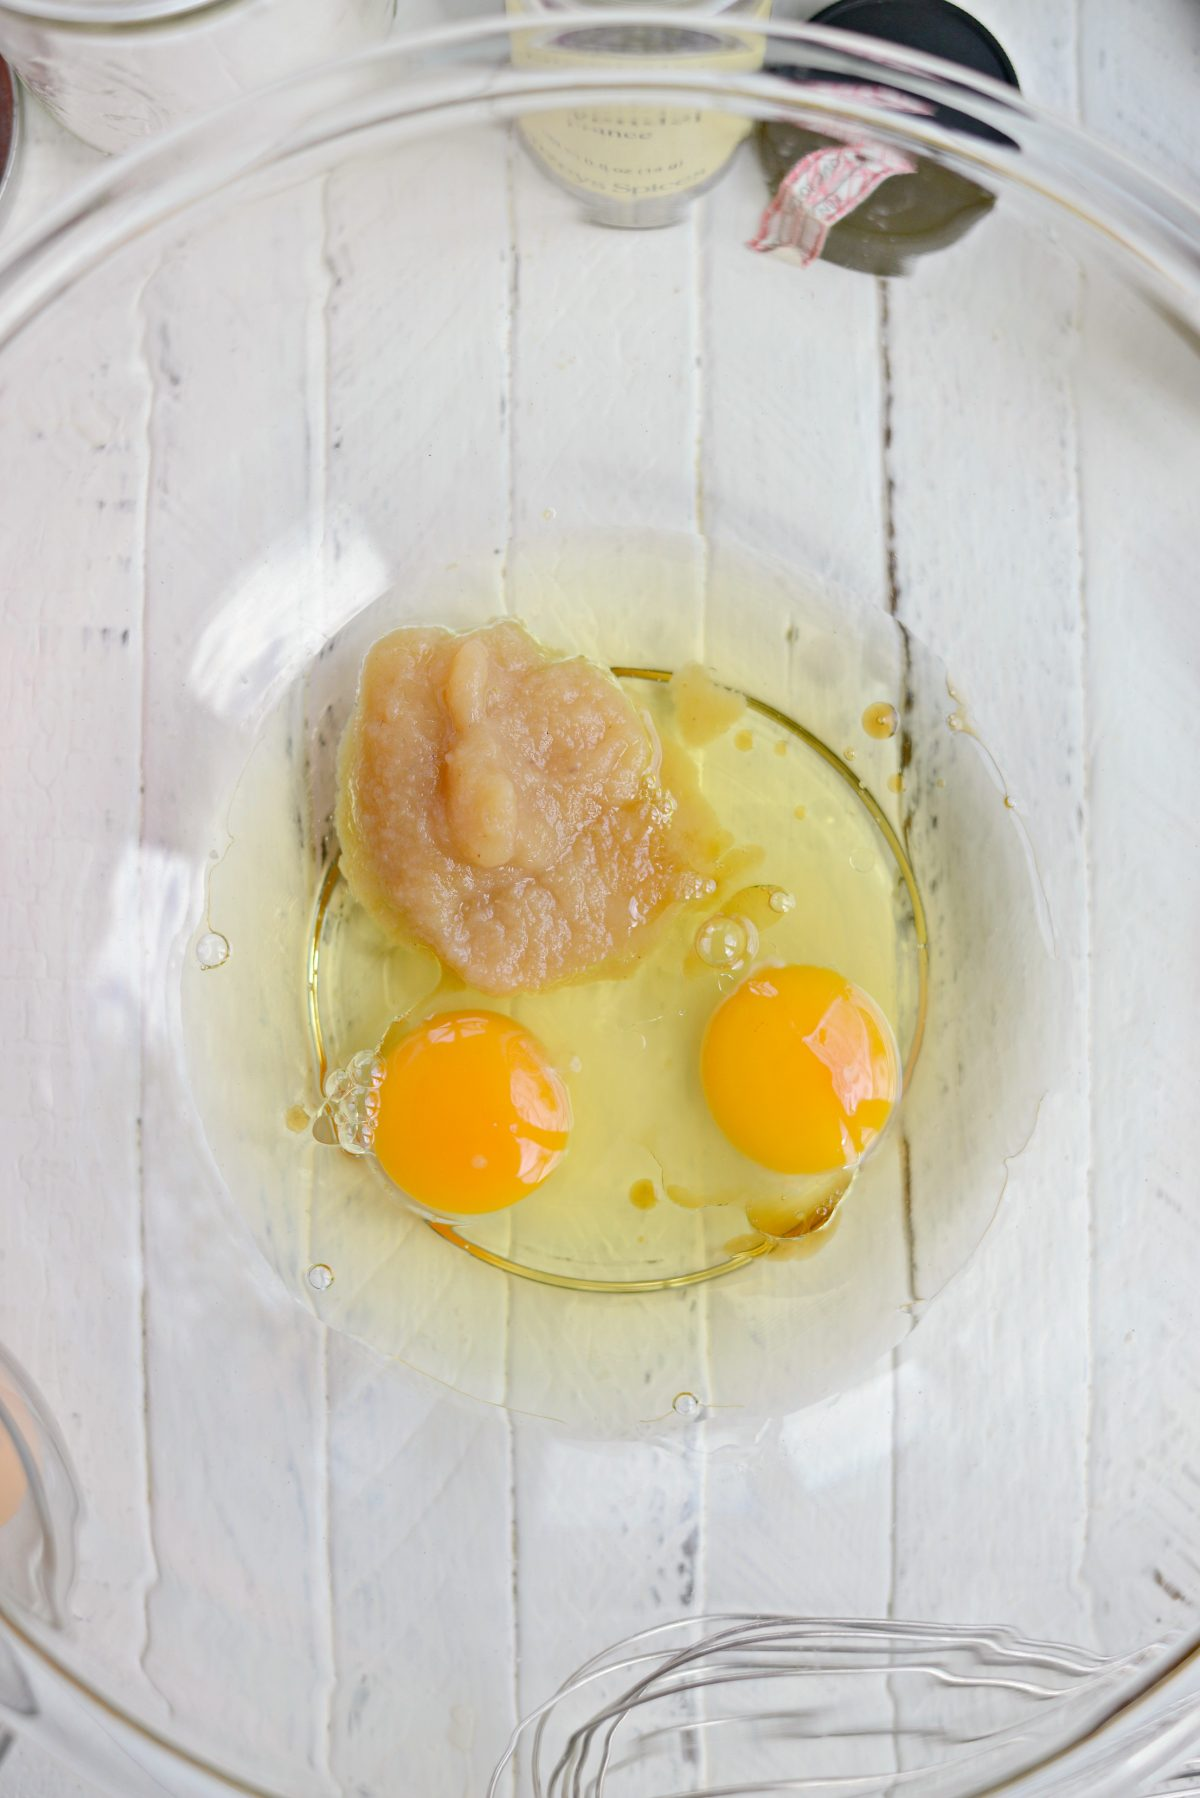 eggs, apple sauce, oil and vanilla in bowl.